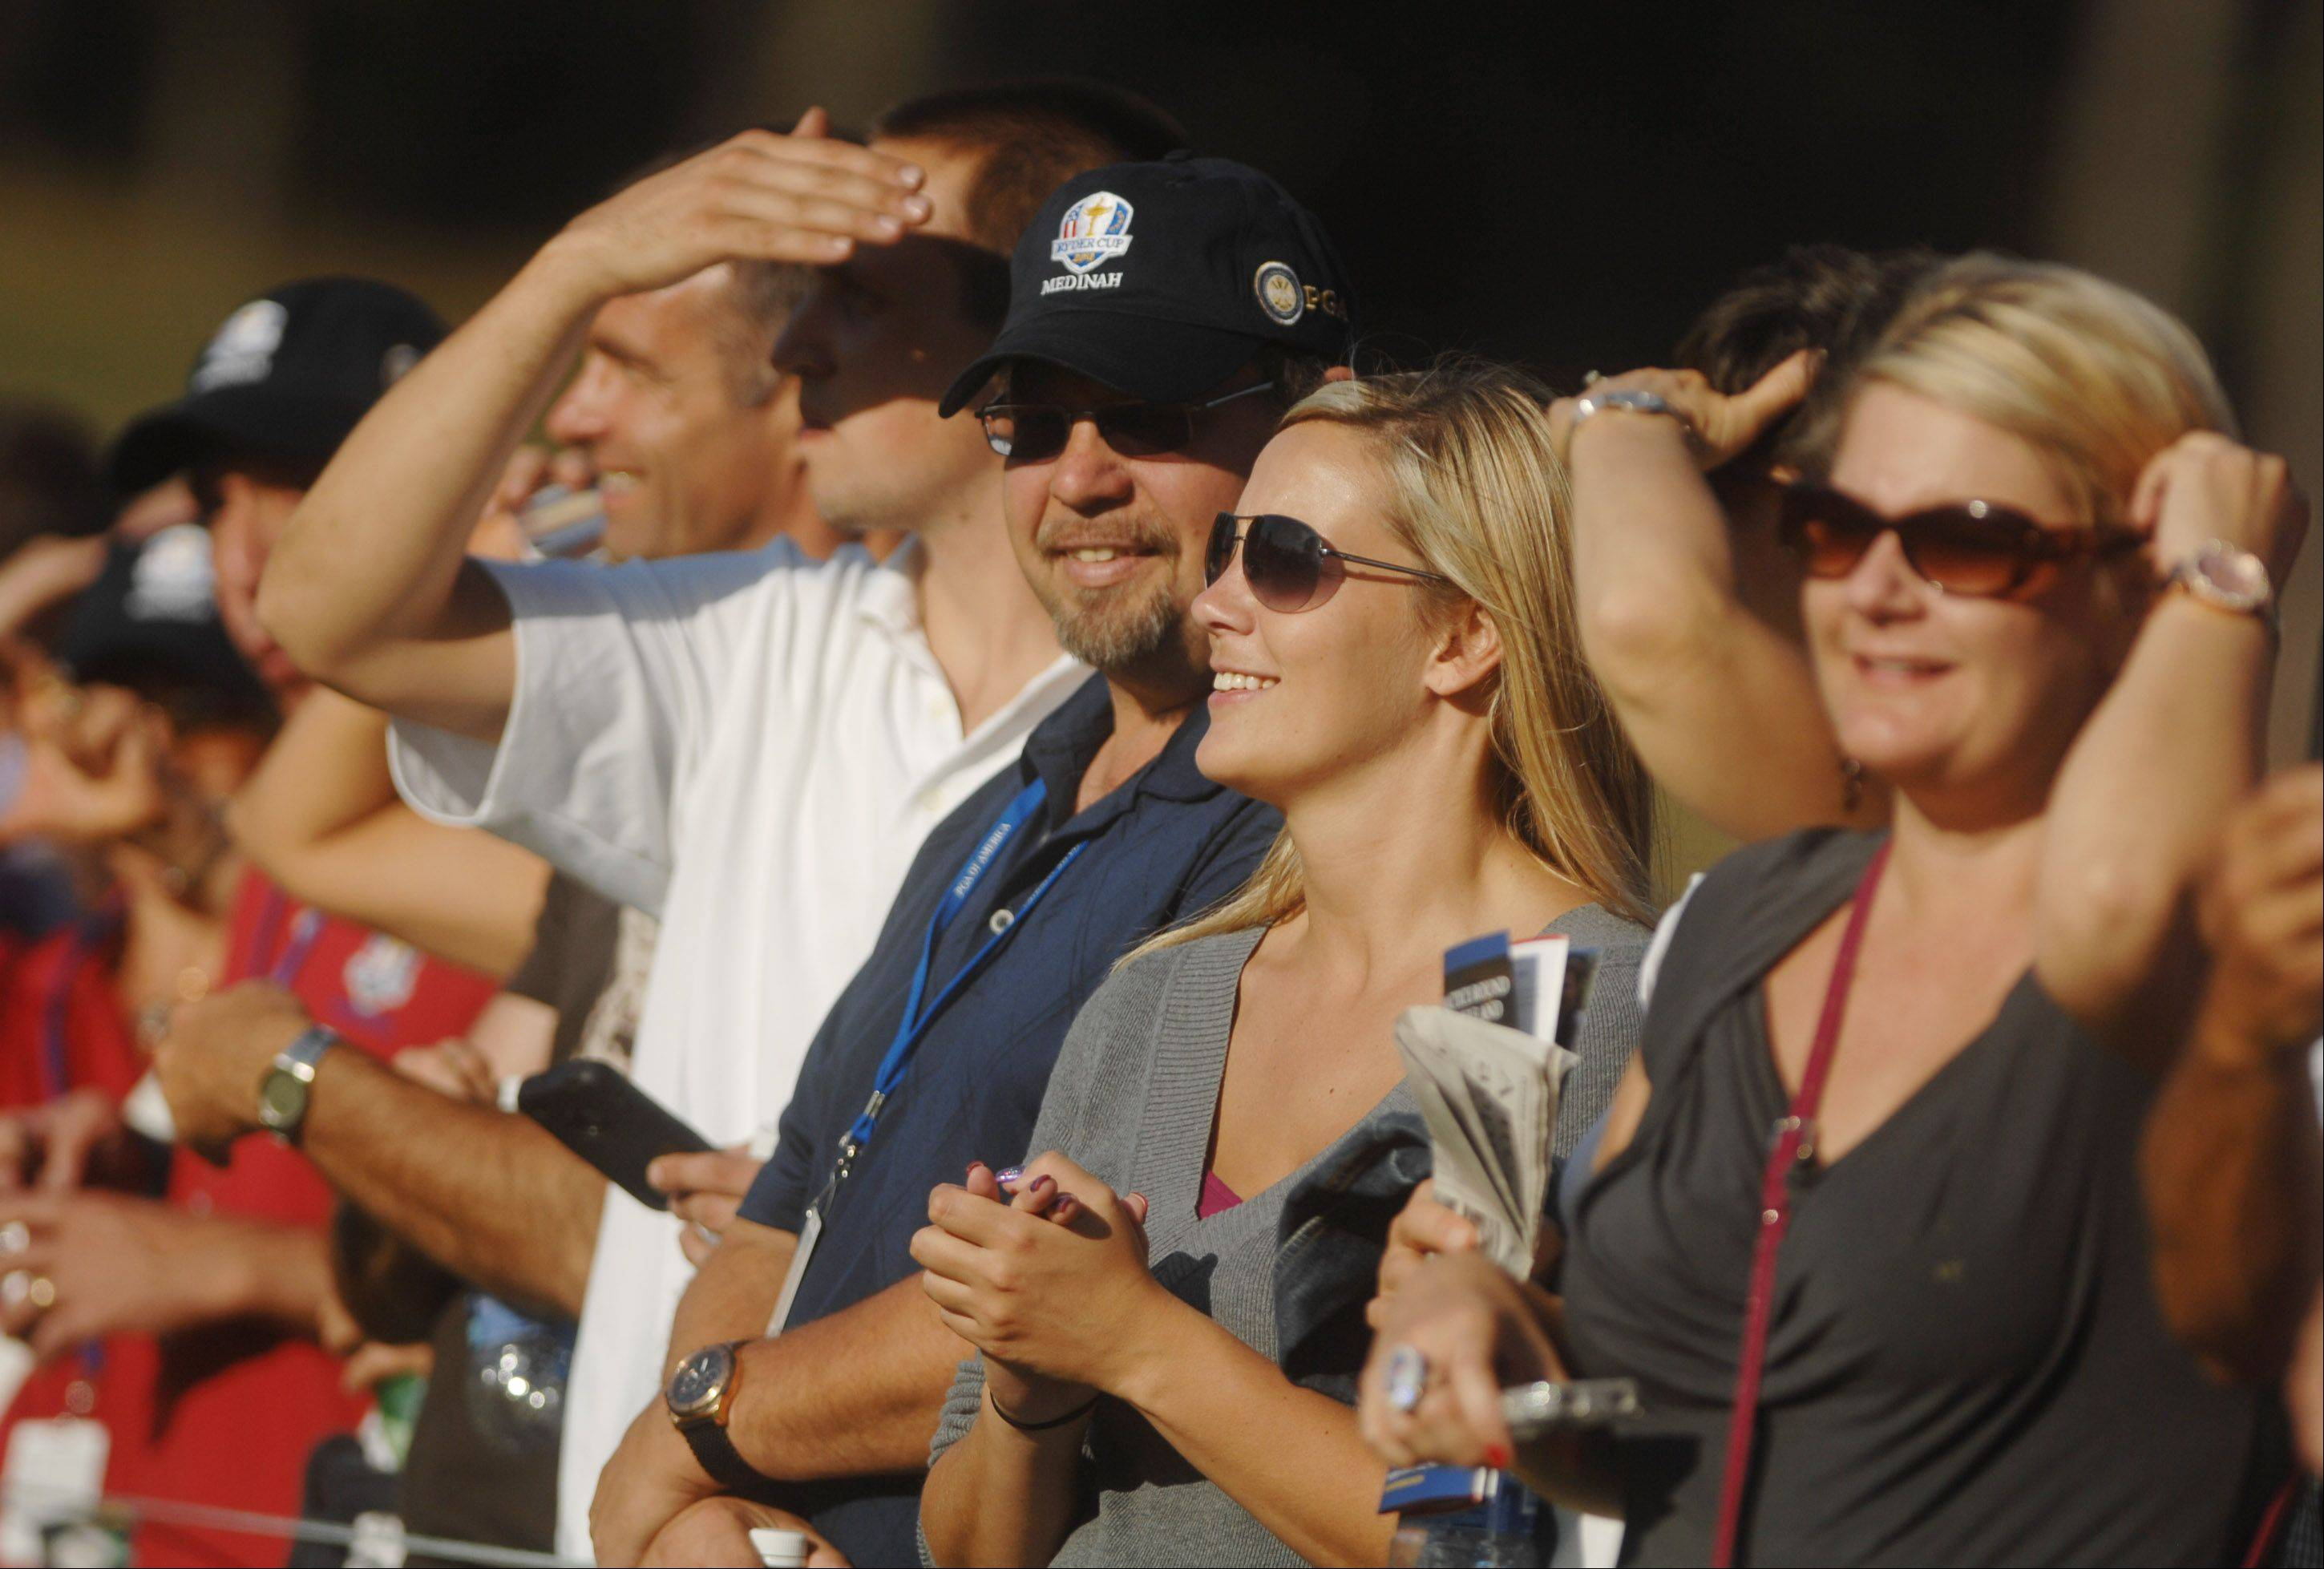 A lot of fans lined the galleries to watch their favorite celebrities take part in the Celebrity Scramble Exhibition Tuesday at the 39th Ryder Cup in Medinah.